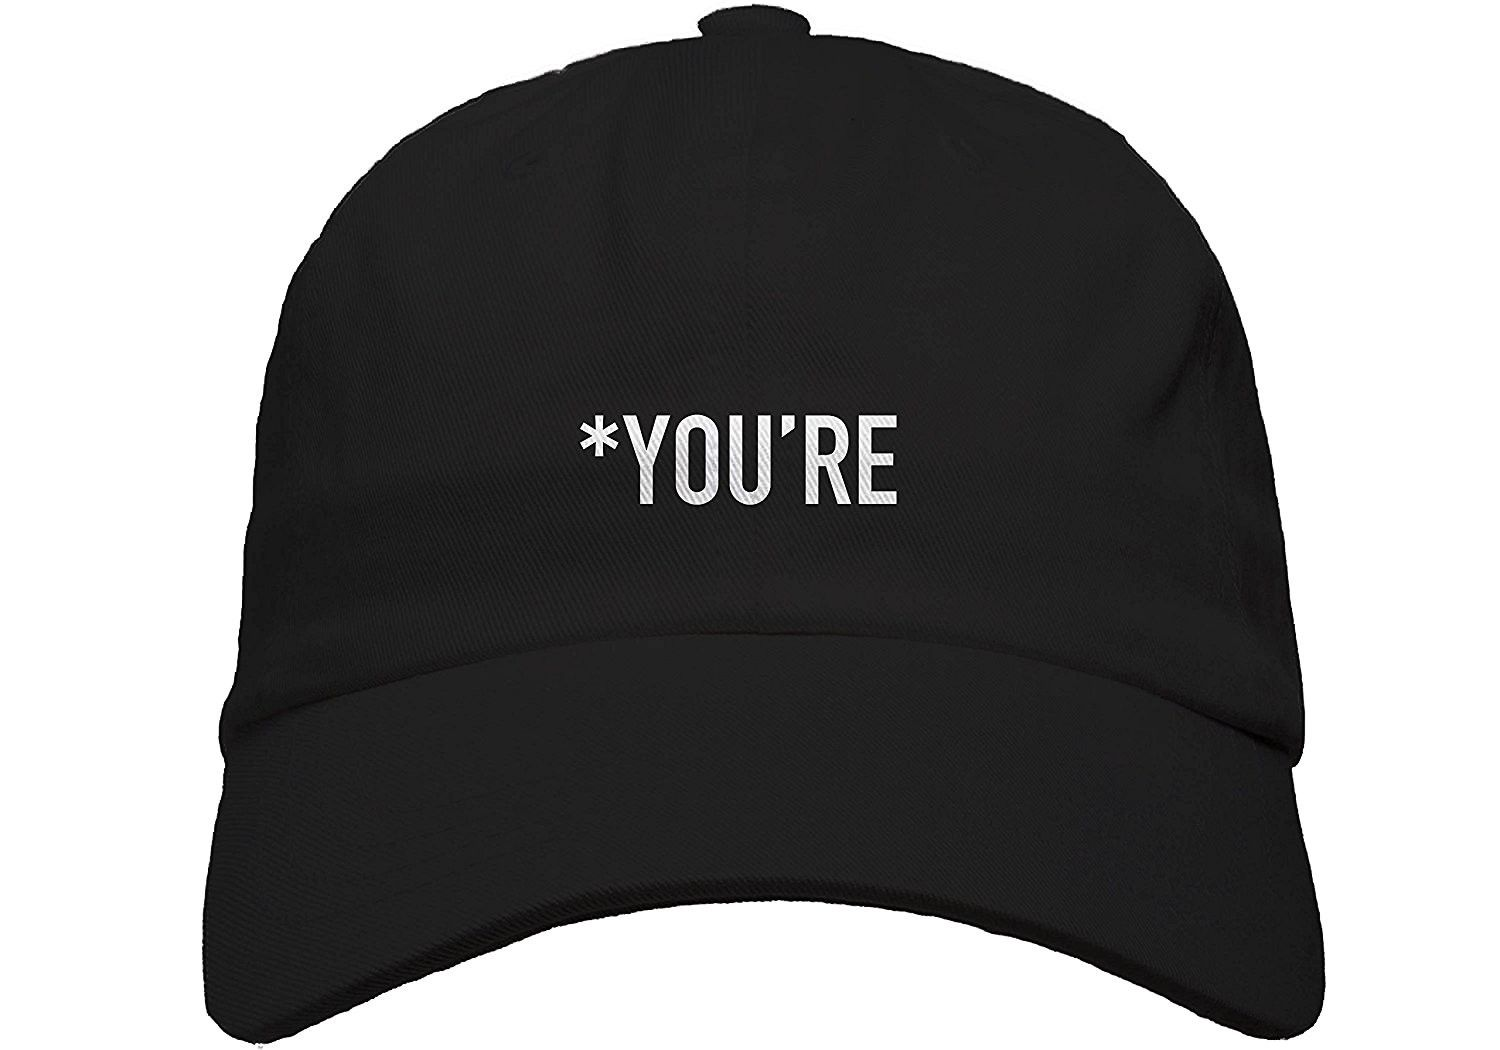 abc1ad0de91 You re Embroidered Baseball Dad Hat Strapback - CY18752HR66 - Hats   Caps